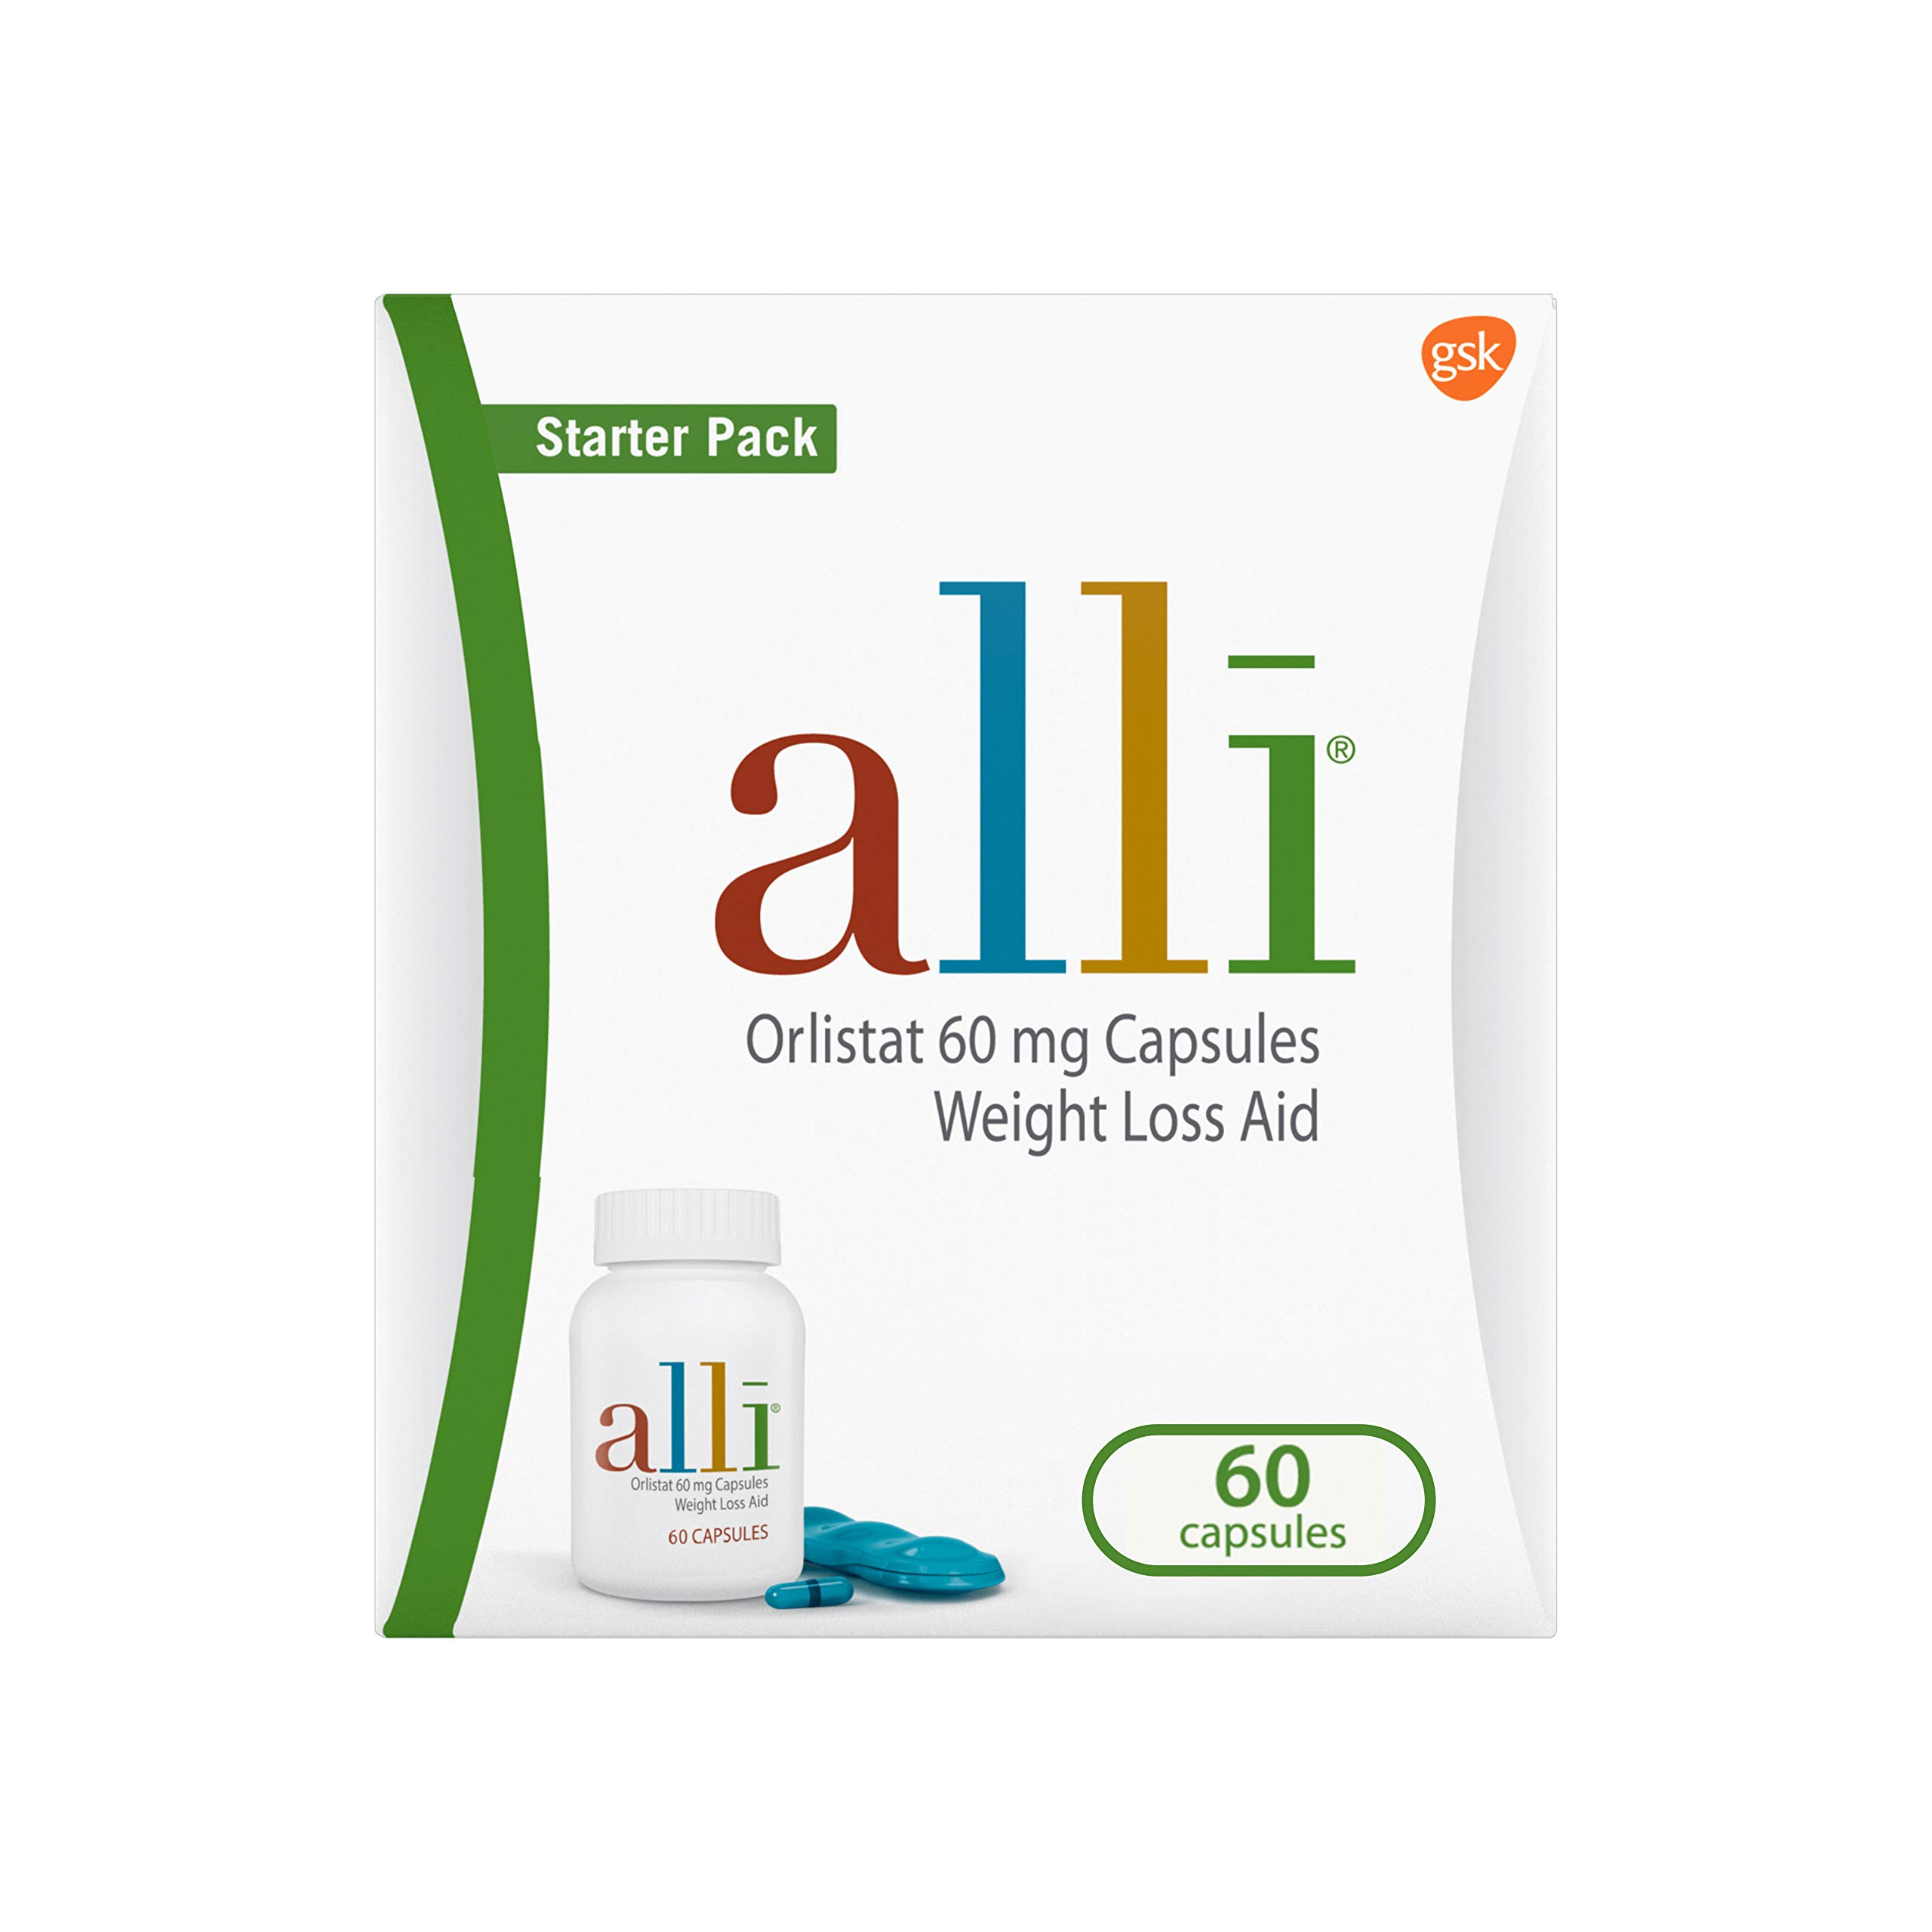 alli Diet Weight Loss Supplement Pills, Orlistat 60mg Capsules Starter Pack, Non prescription weight loss aid, 60 count